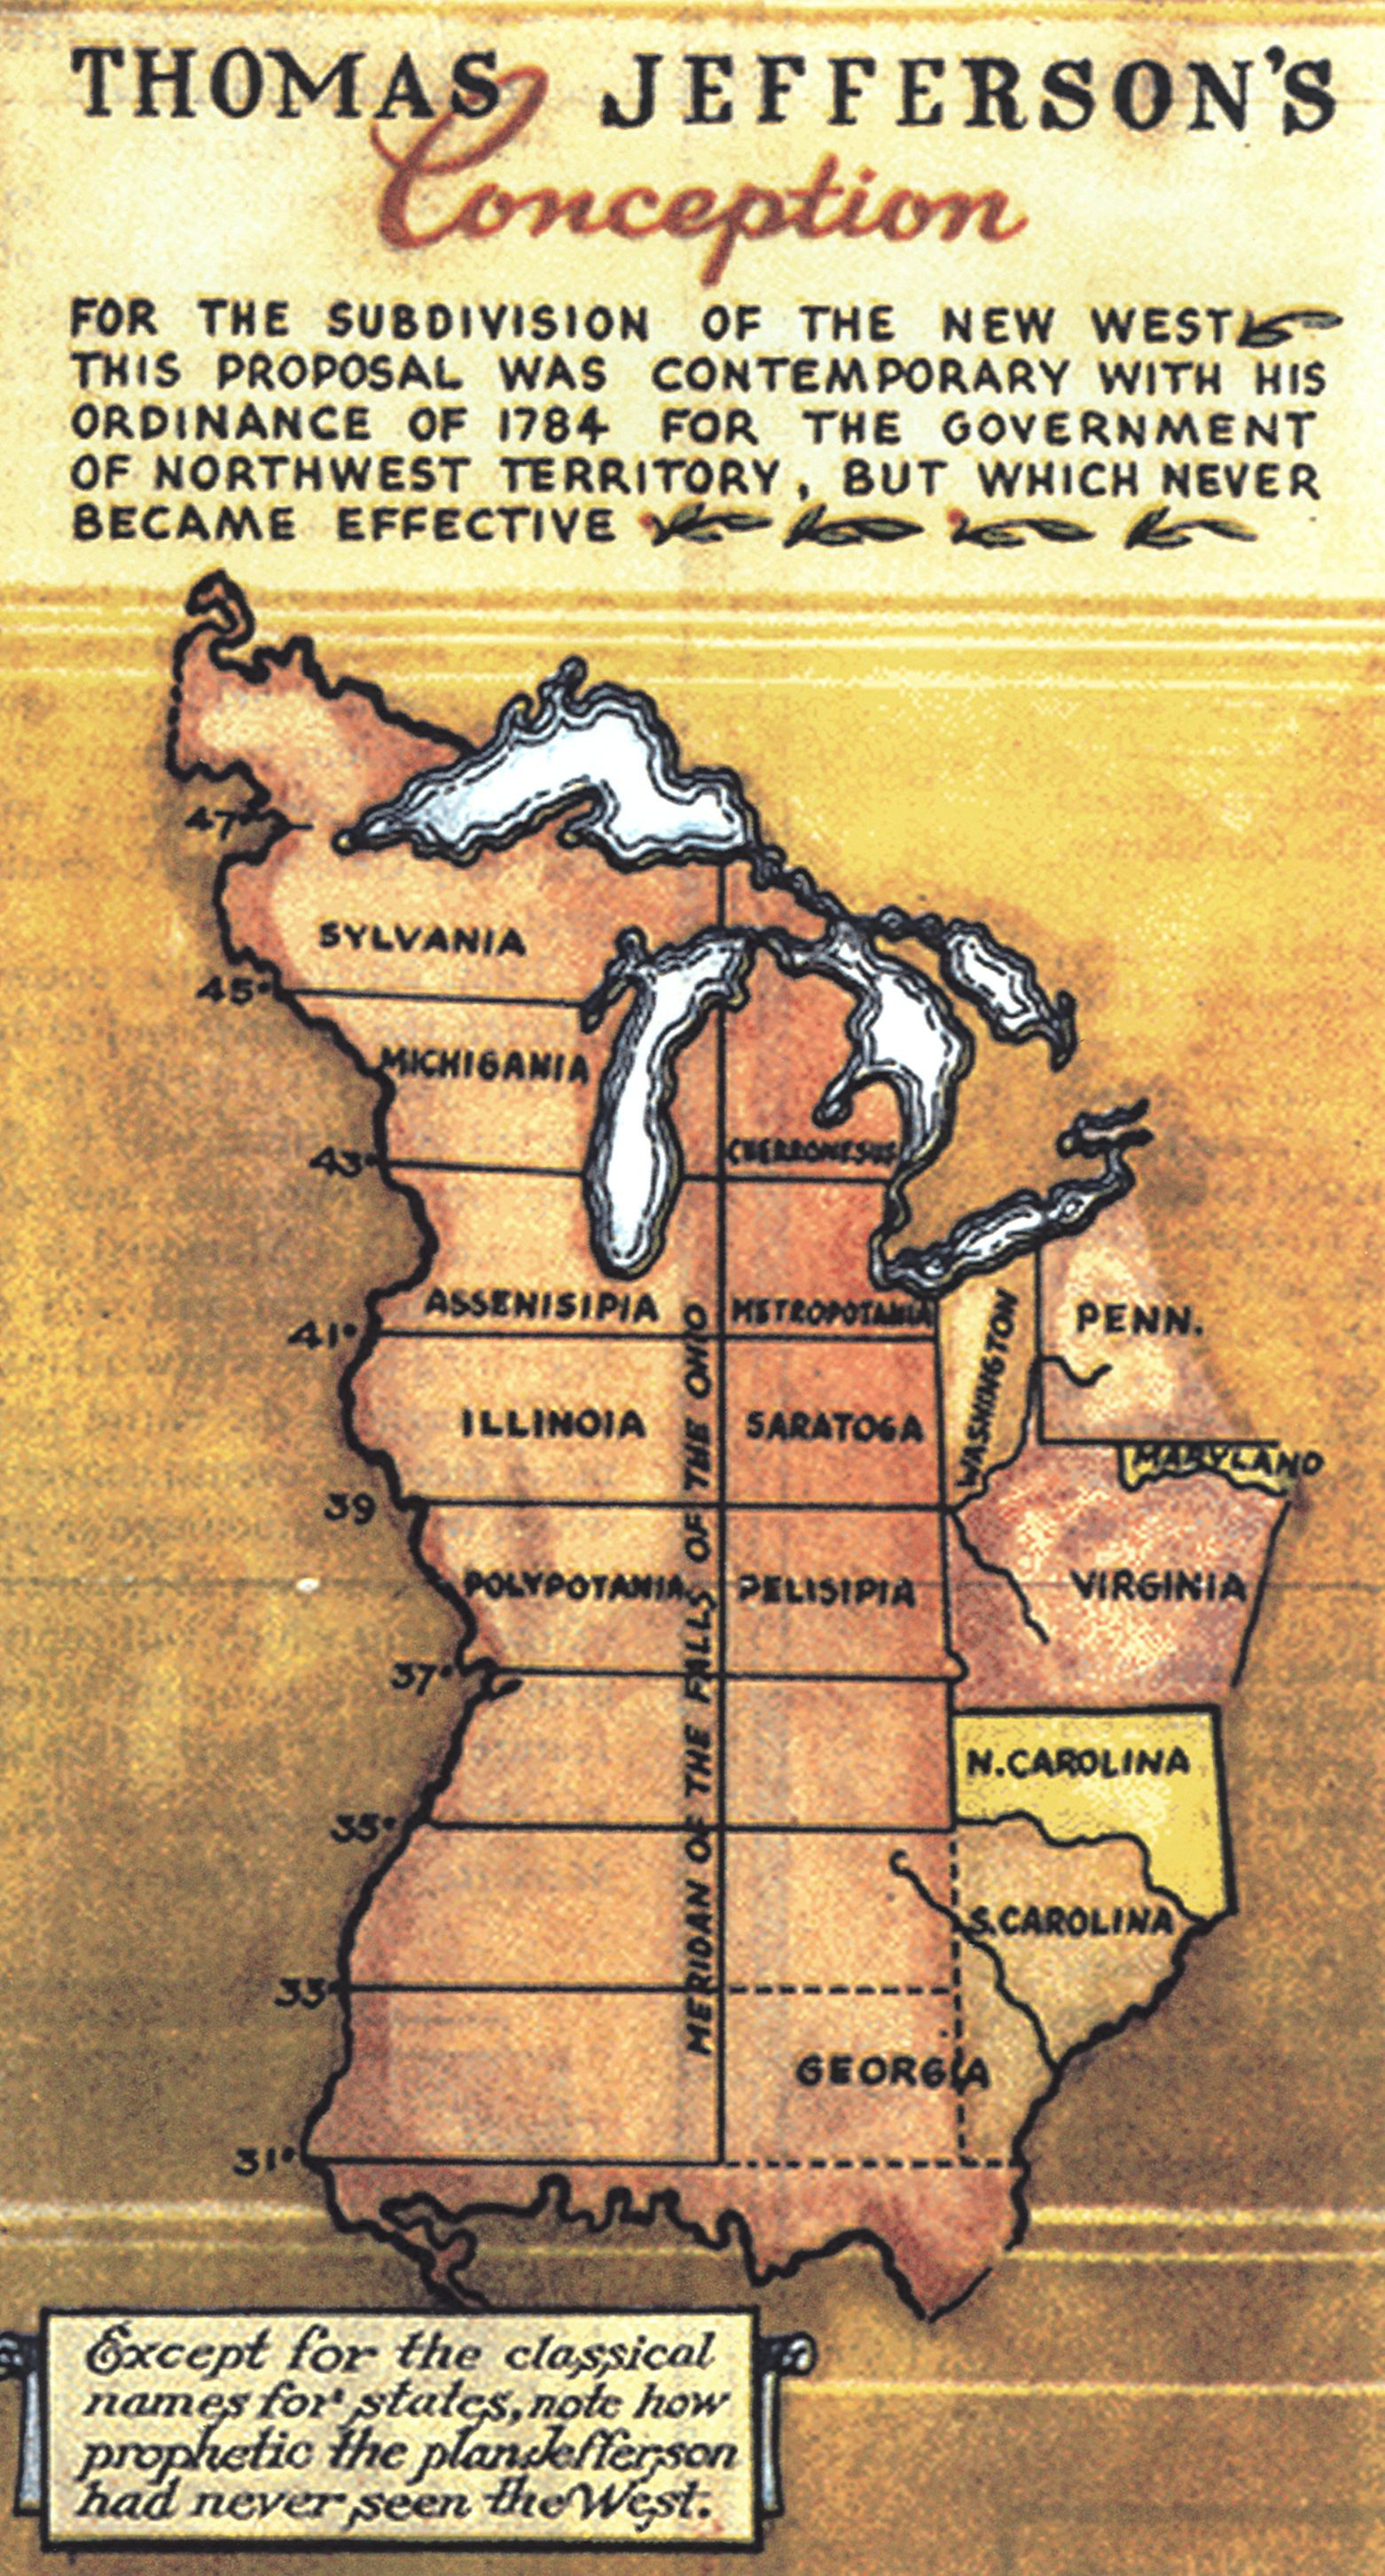 Jeffersons Absurd Plan for New Northwestern States  Big Think